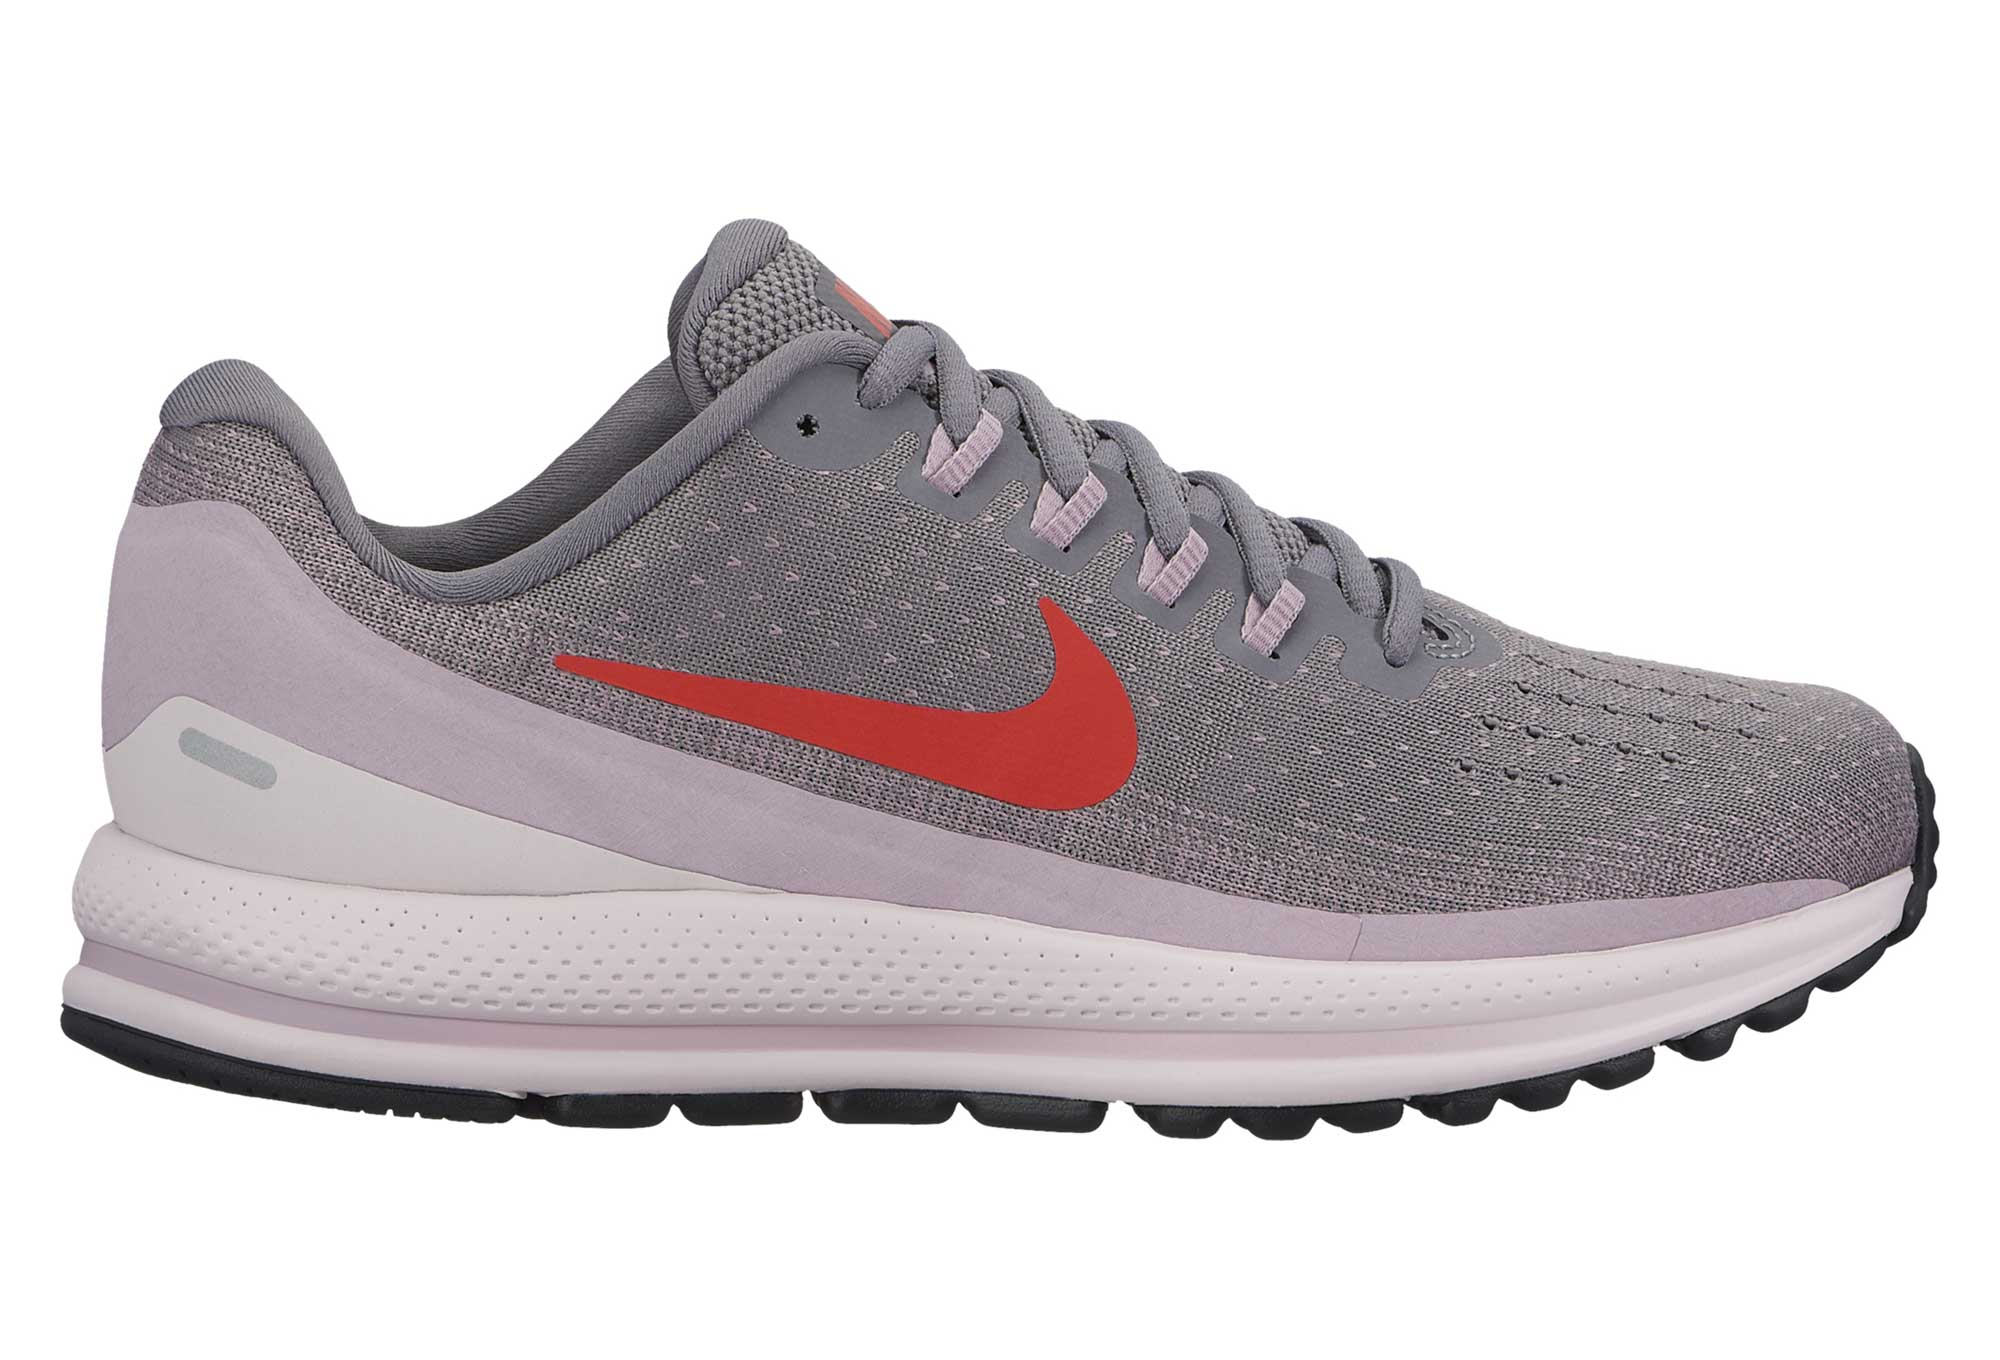 buy popular d441c c358a Chaussures de Running Femme Nike Air Zoom Vomero 13 Gris